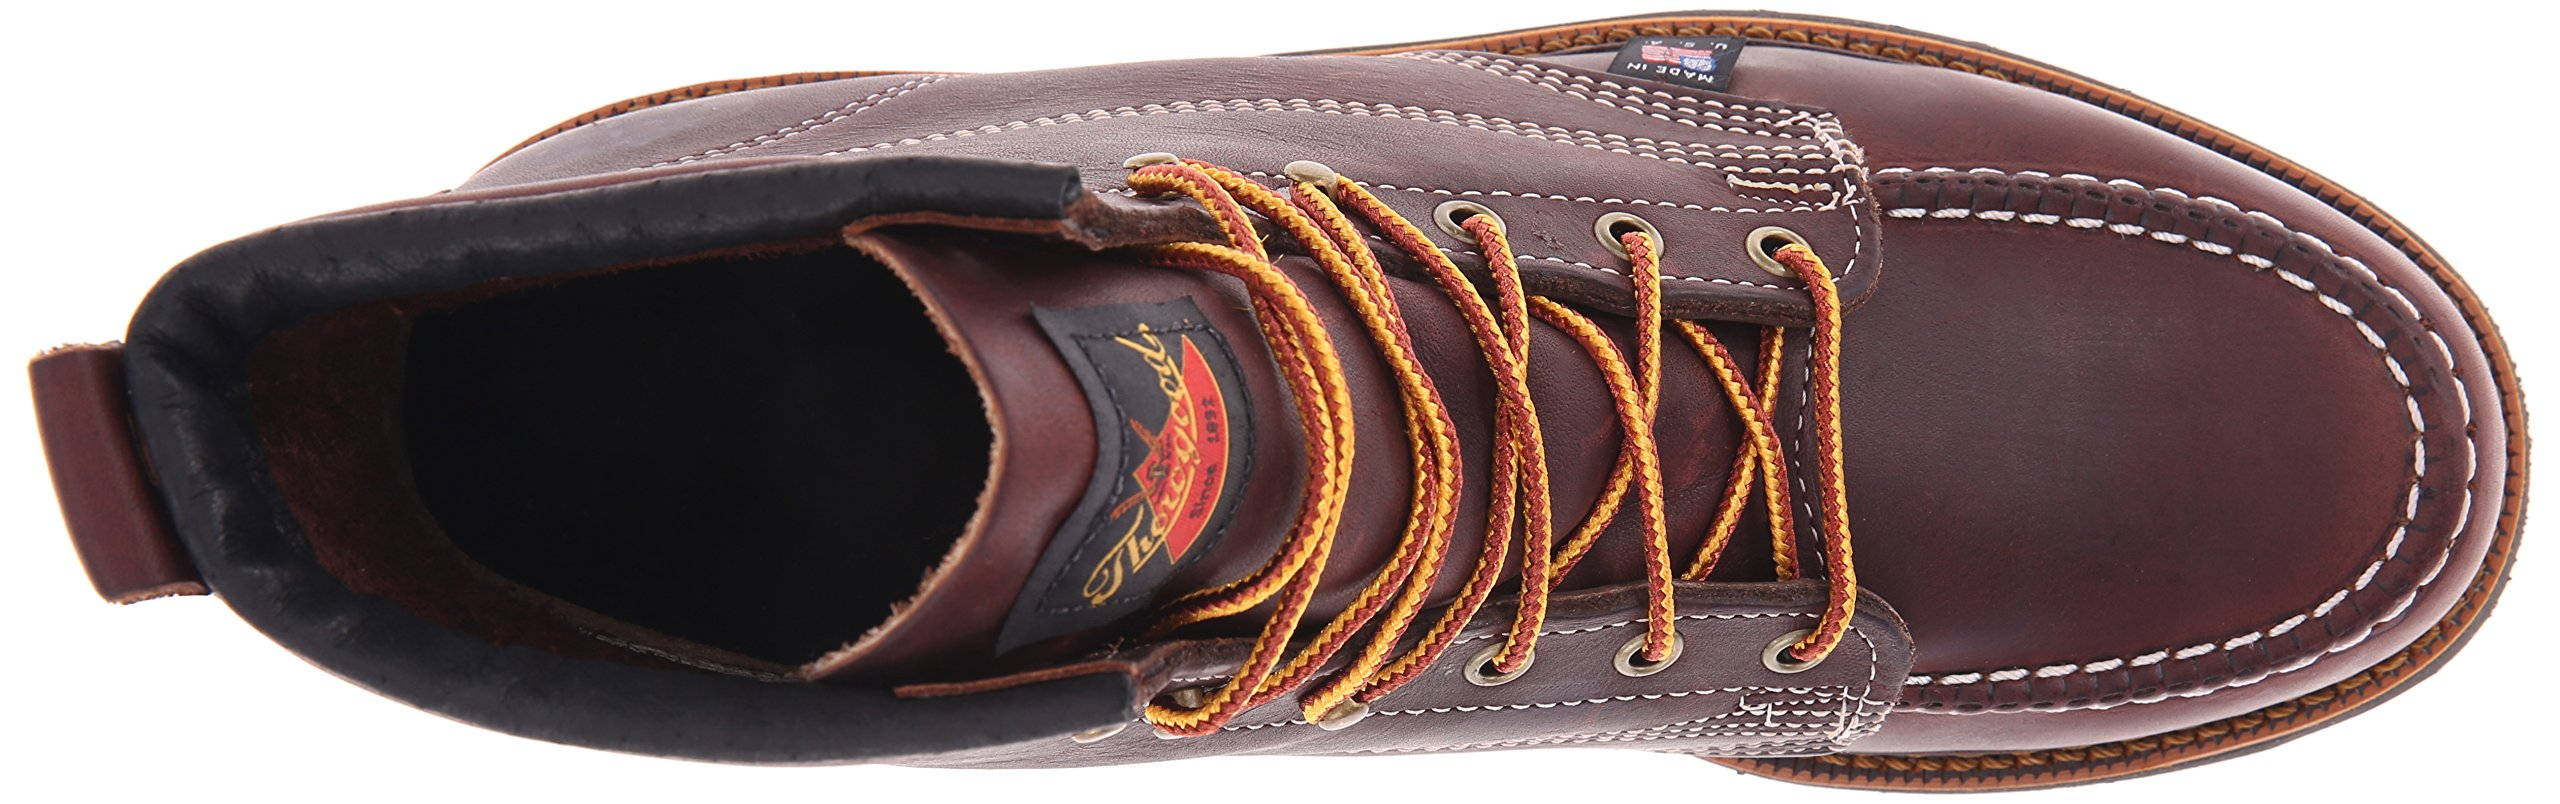 Thorogood-American-Heritage-Men-039-s-6-034-Moc-Toe-Max-Wedge-Non-Safety-Boots thumbnail 14